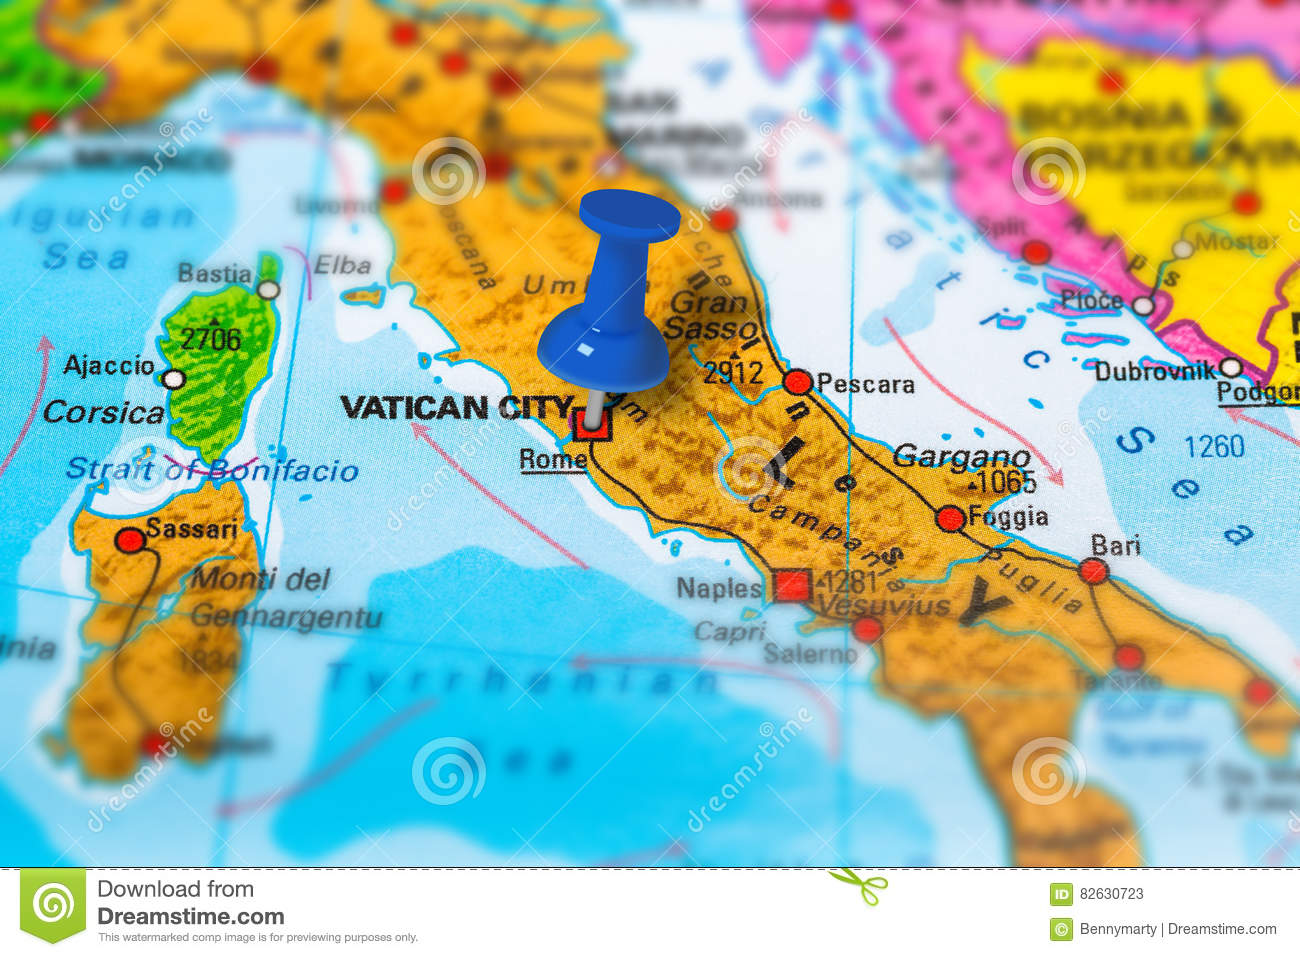 thumbtack map with Photo Stock Carte De L Italie De Ville Du Vatican Image82630723 on  likewise Royalty Free Stock Images Office Supplies Seamless Background Image25730879 furthermore 687996 Fonts You Want 2015 as well 19 besides 575.